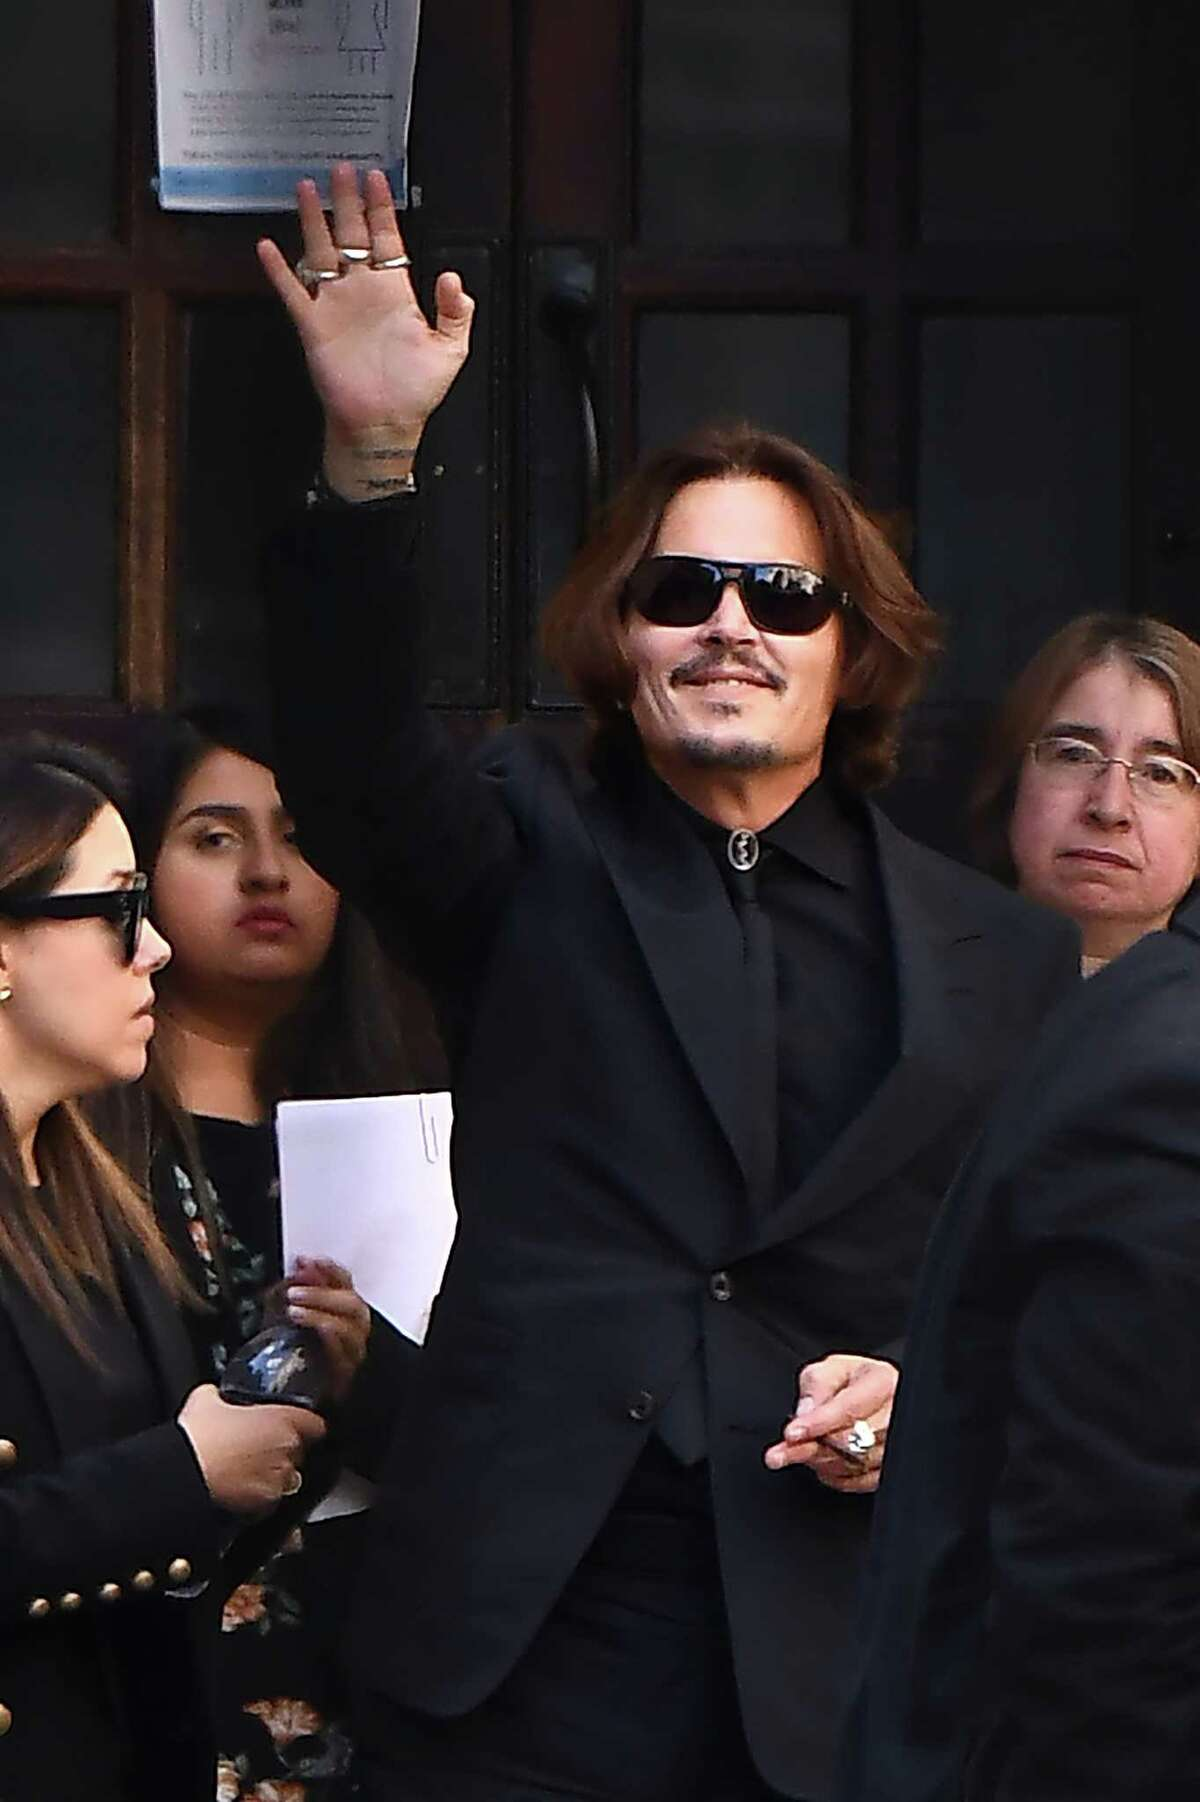 LONDON, ENGLAND - JULY 20: Actor Johnny Depp waves as he departs Royal Courts of Justice, Strand on July 20, 2020 in London, England. The Hollywood Actor is suing News Group Newspapers (NGN) and the Sun's executive editor, Dan Wootton, over an article published in 2018 that referred to him as a